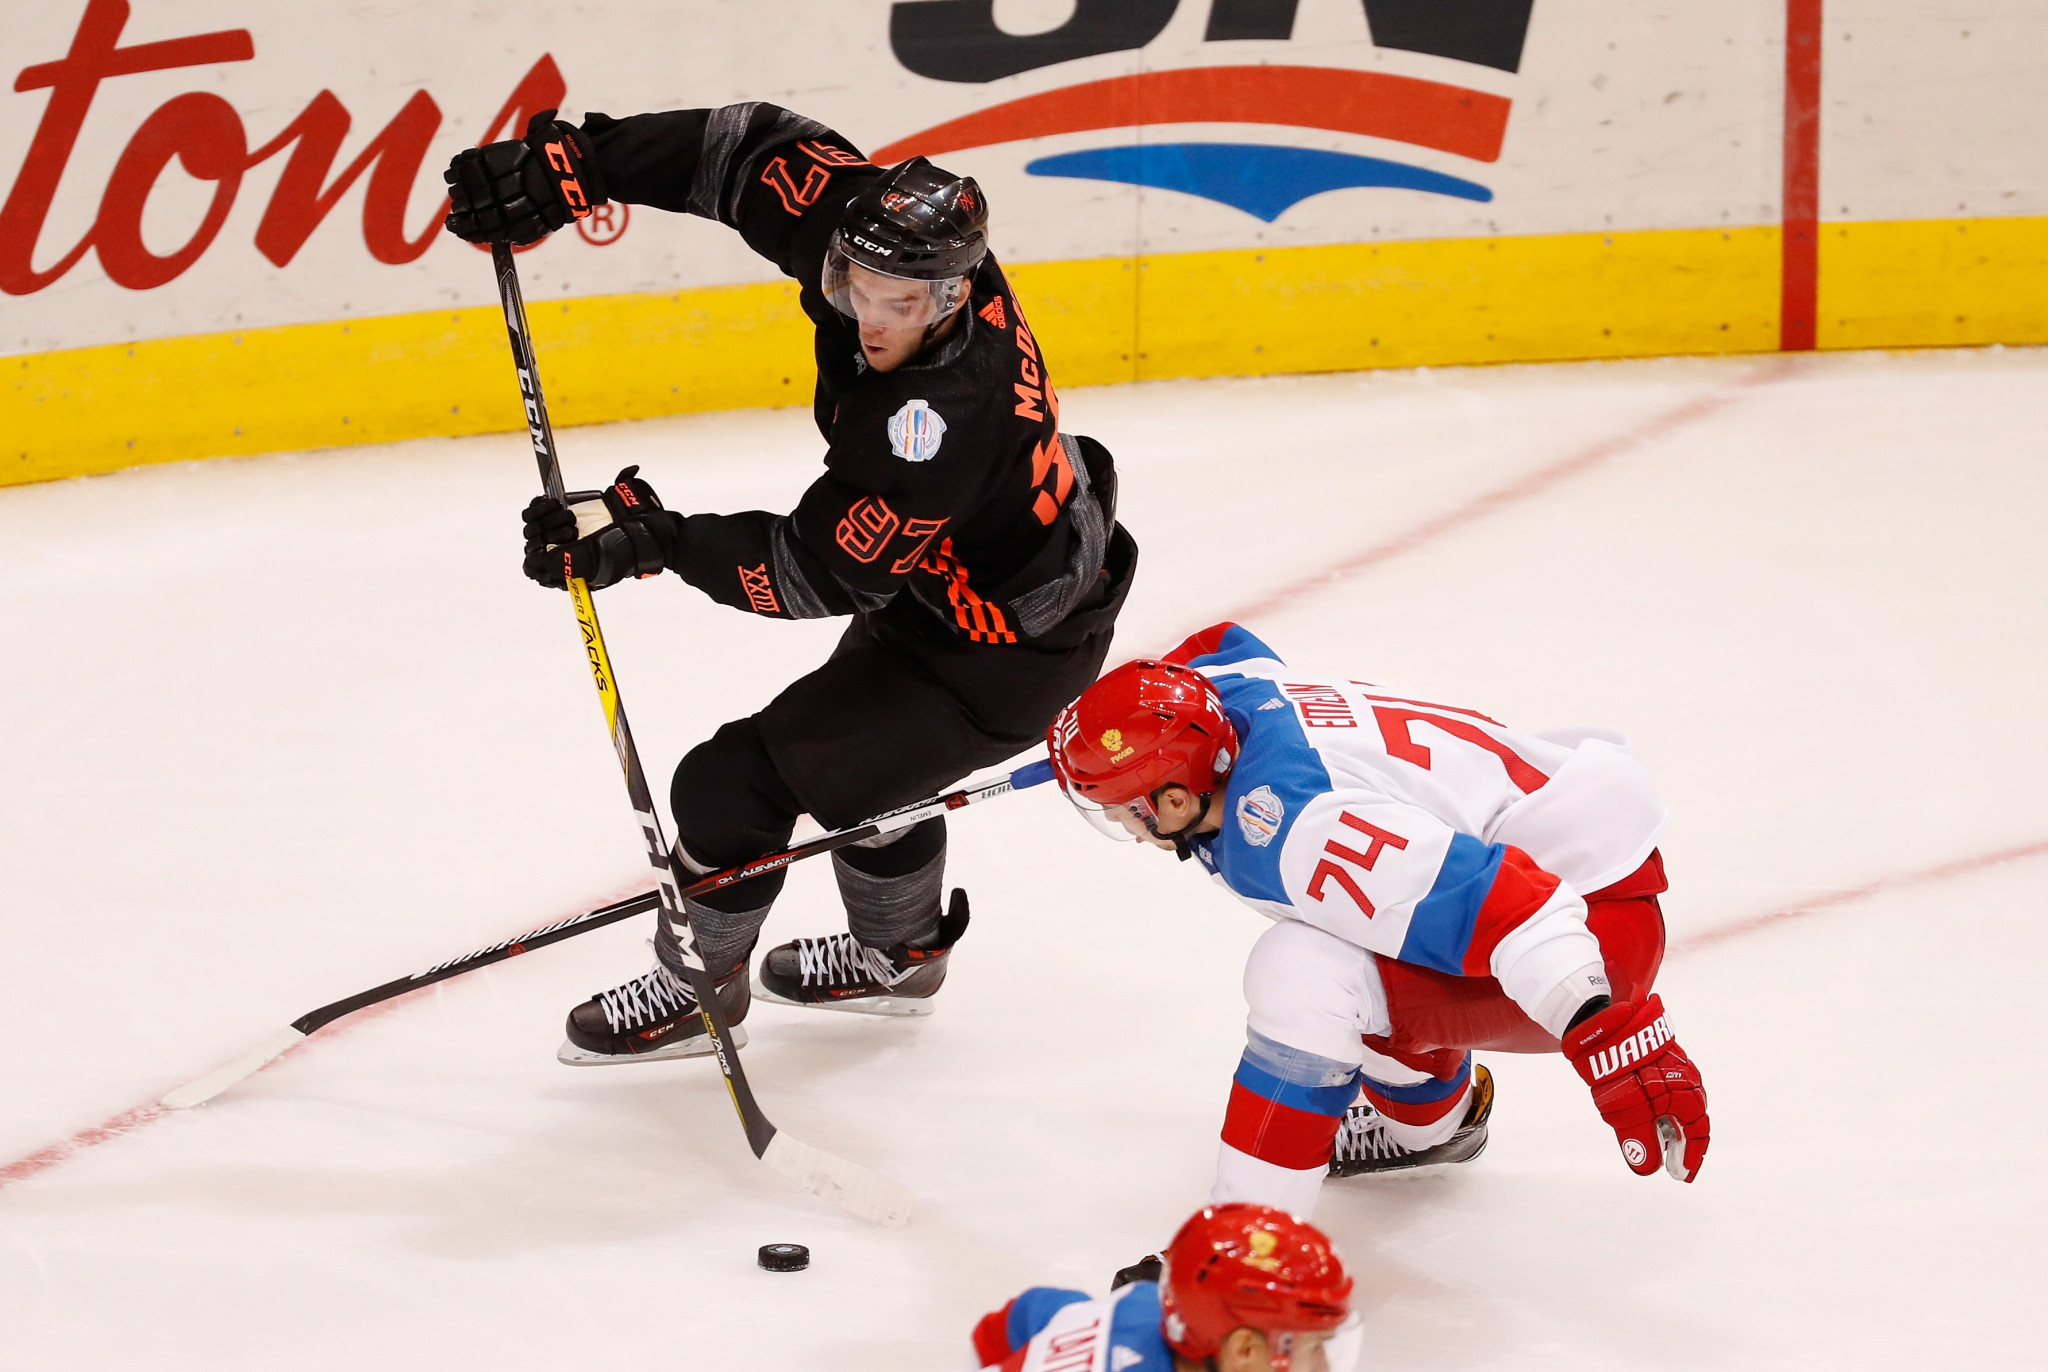 Connor McDavid earned a world title with Canada in 2016 ©Getty Images